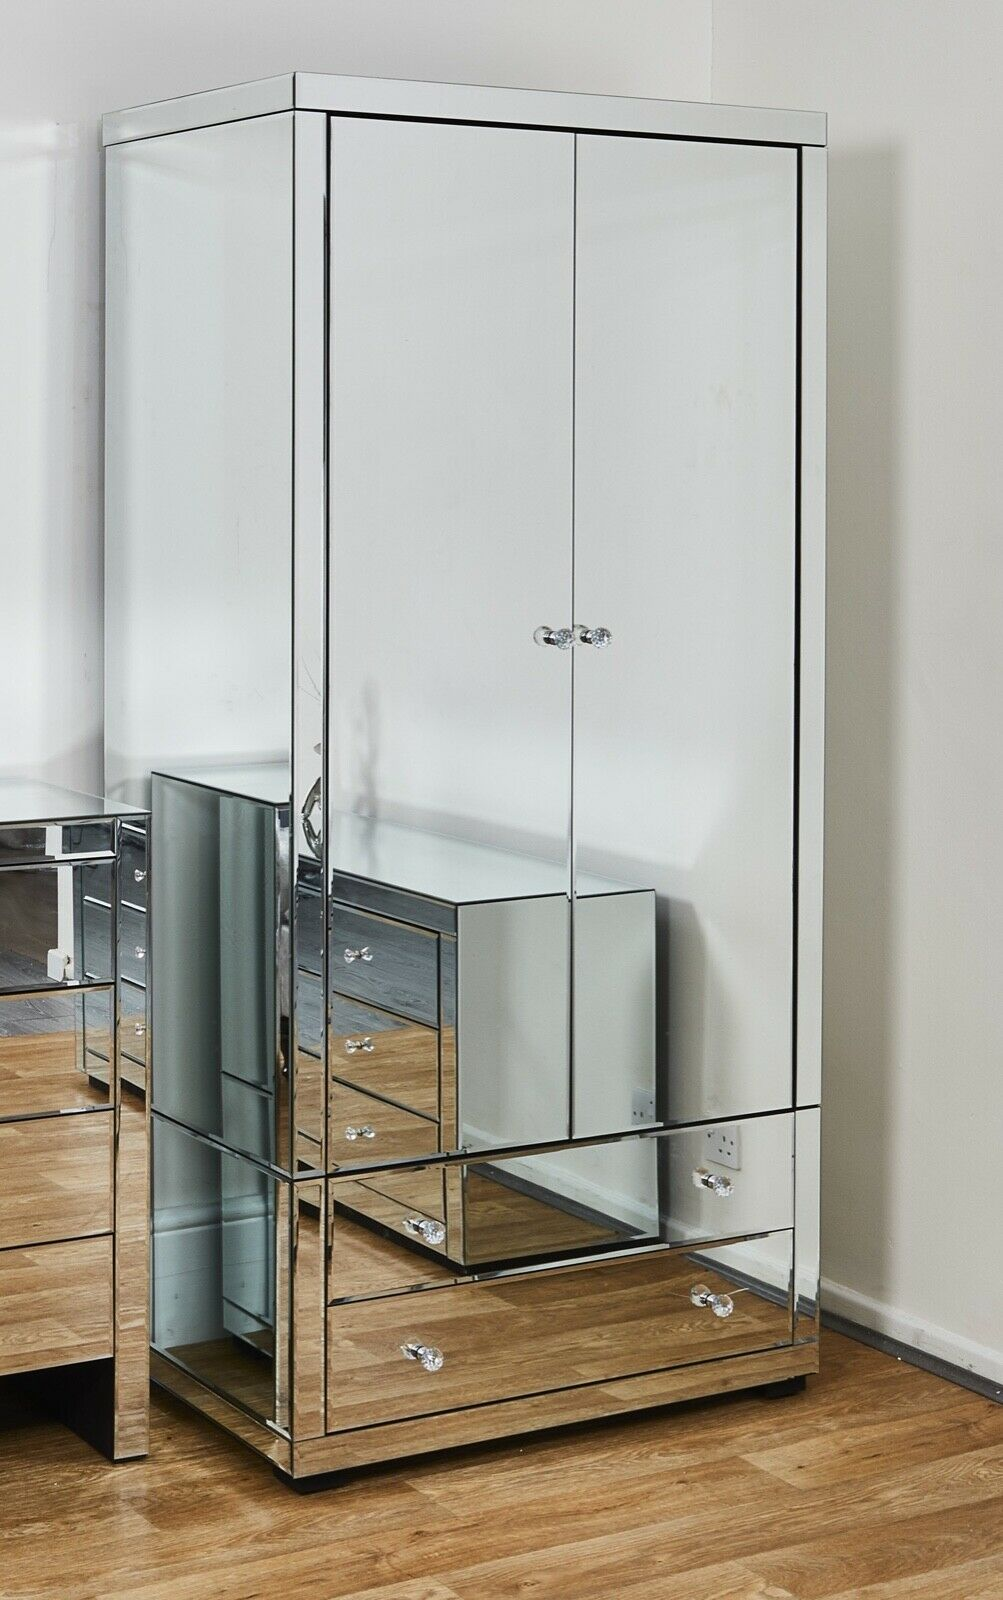 Stool Bedside Table: Mirrored Furniture Bedside Table Chest Drawers Dressing